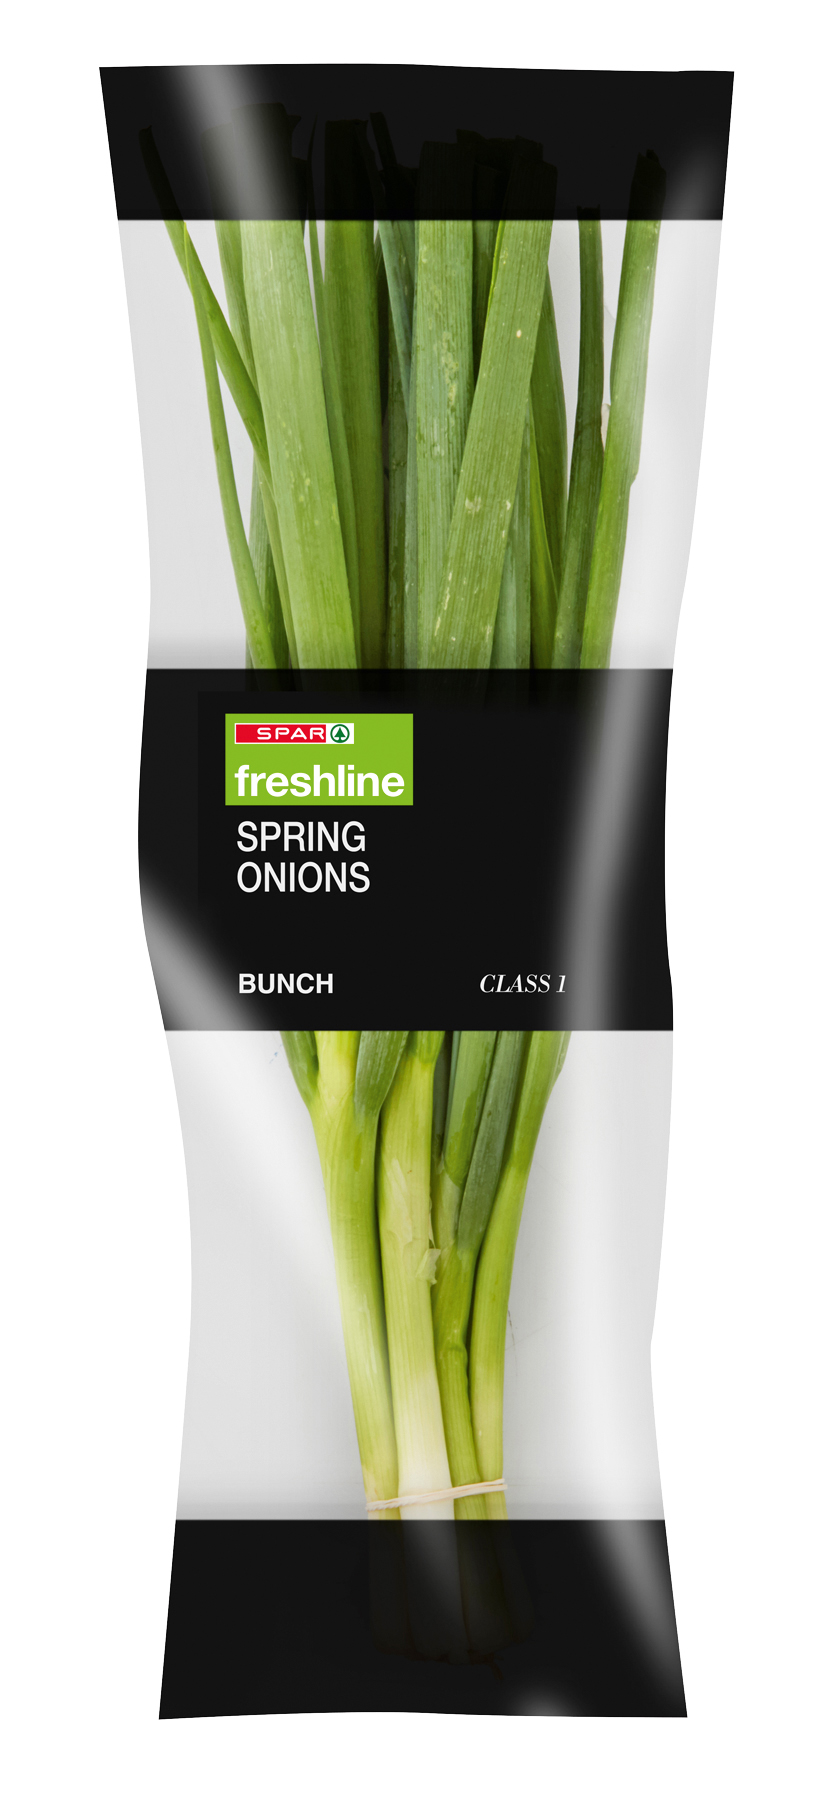 freshline spring onions - bunch